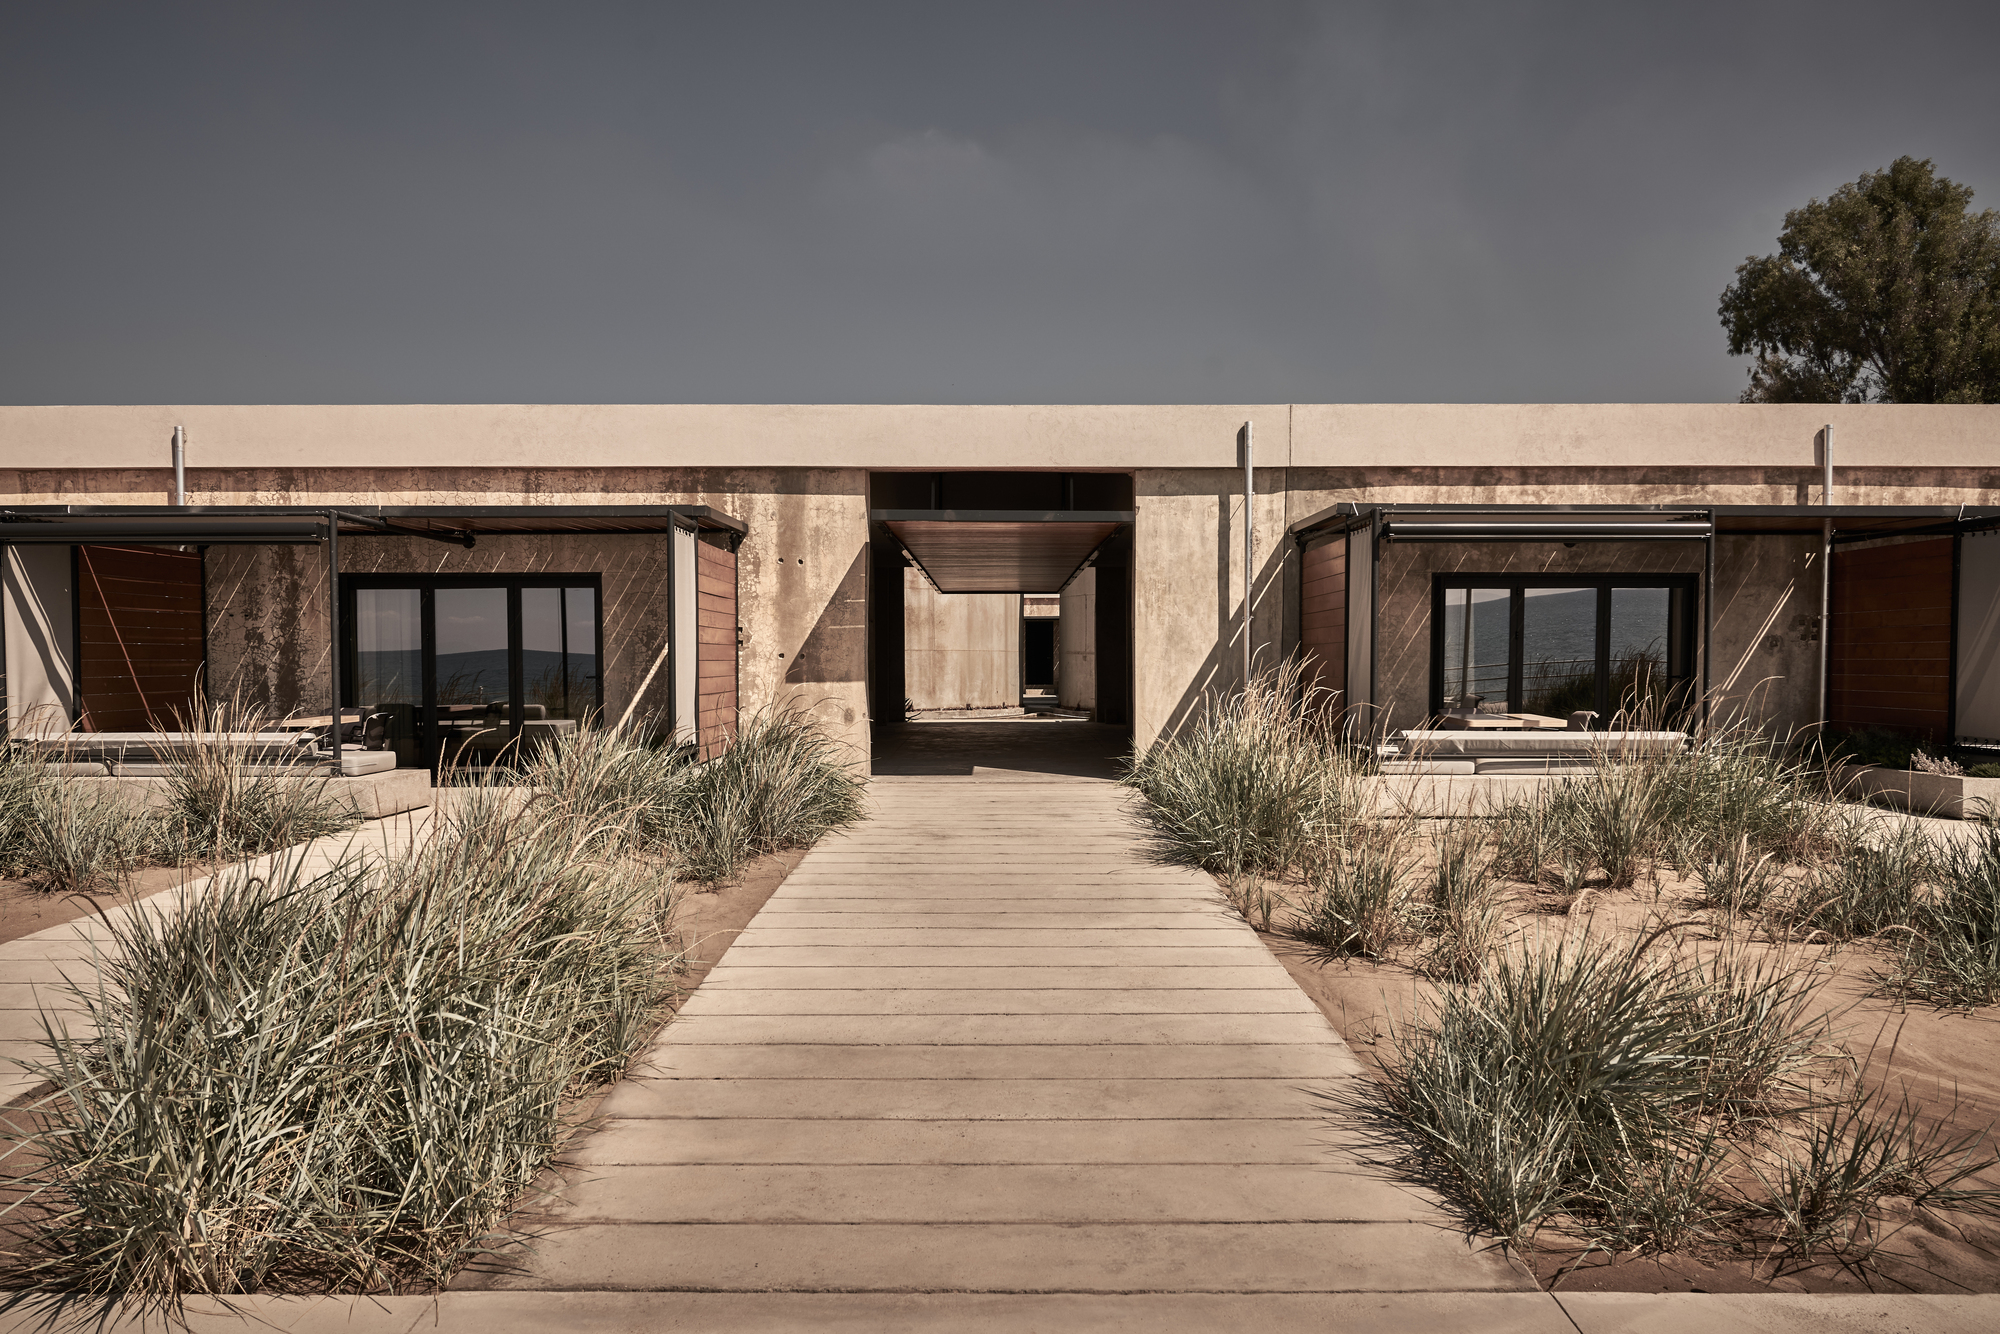 Hotels Architecture And Design Archdaily